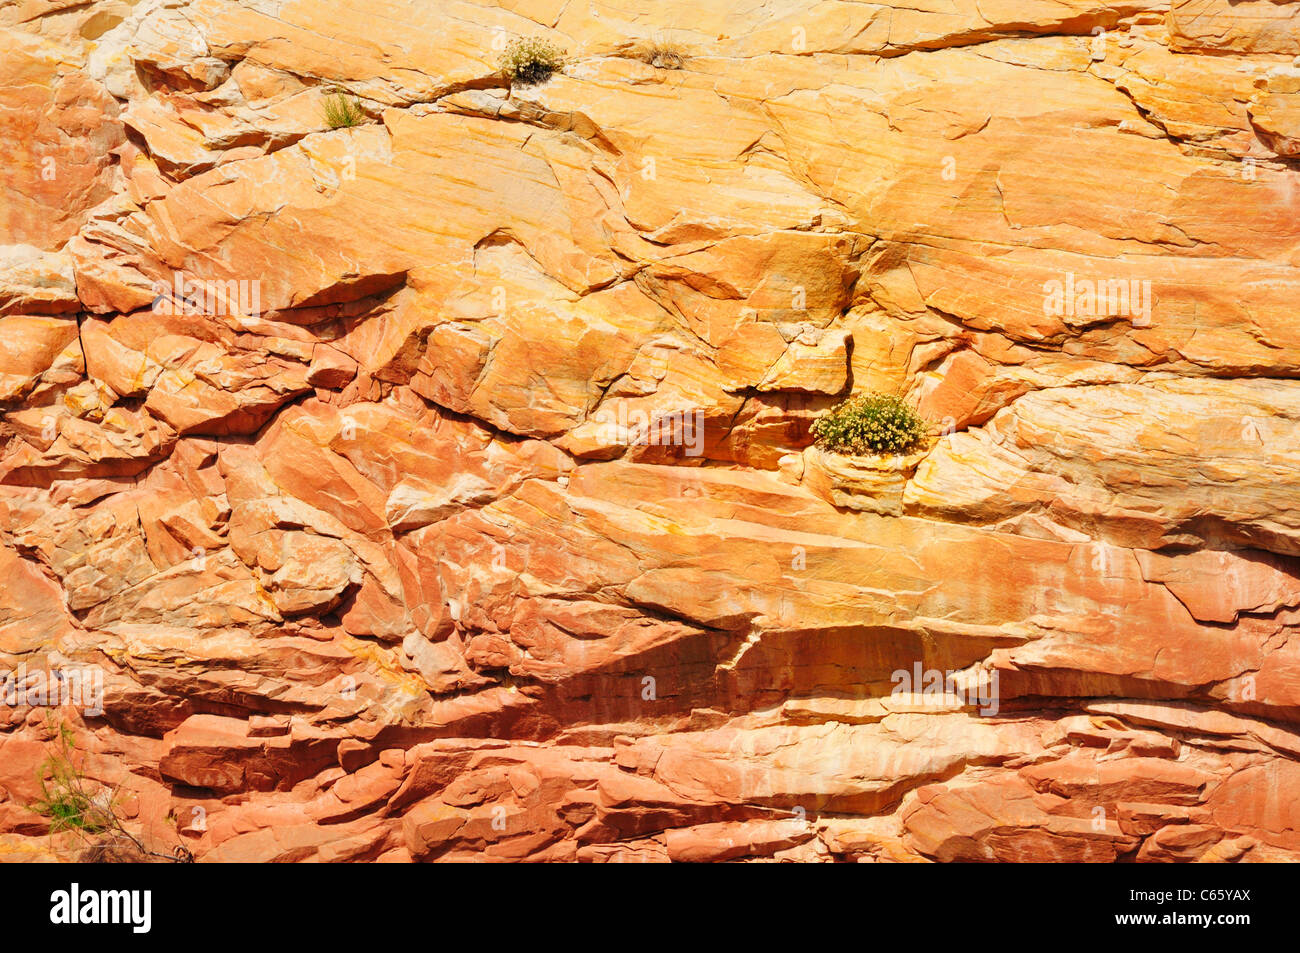 Green plants struggle for survival holding on in crevices within the sheer rock canyon walls of Capitol Reef National - Stock Image